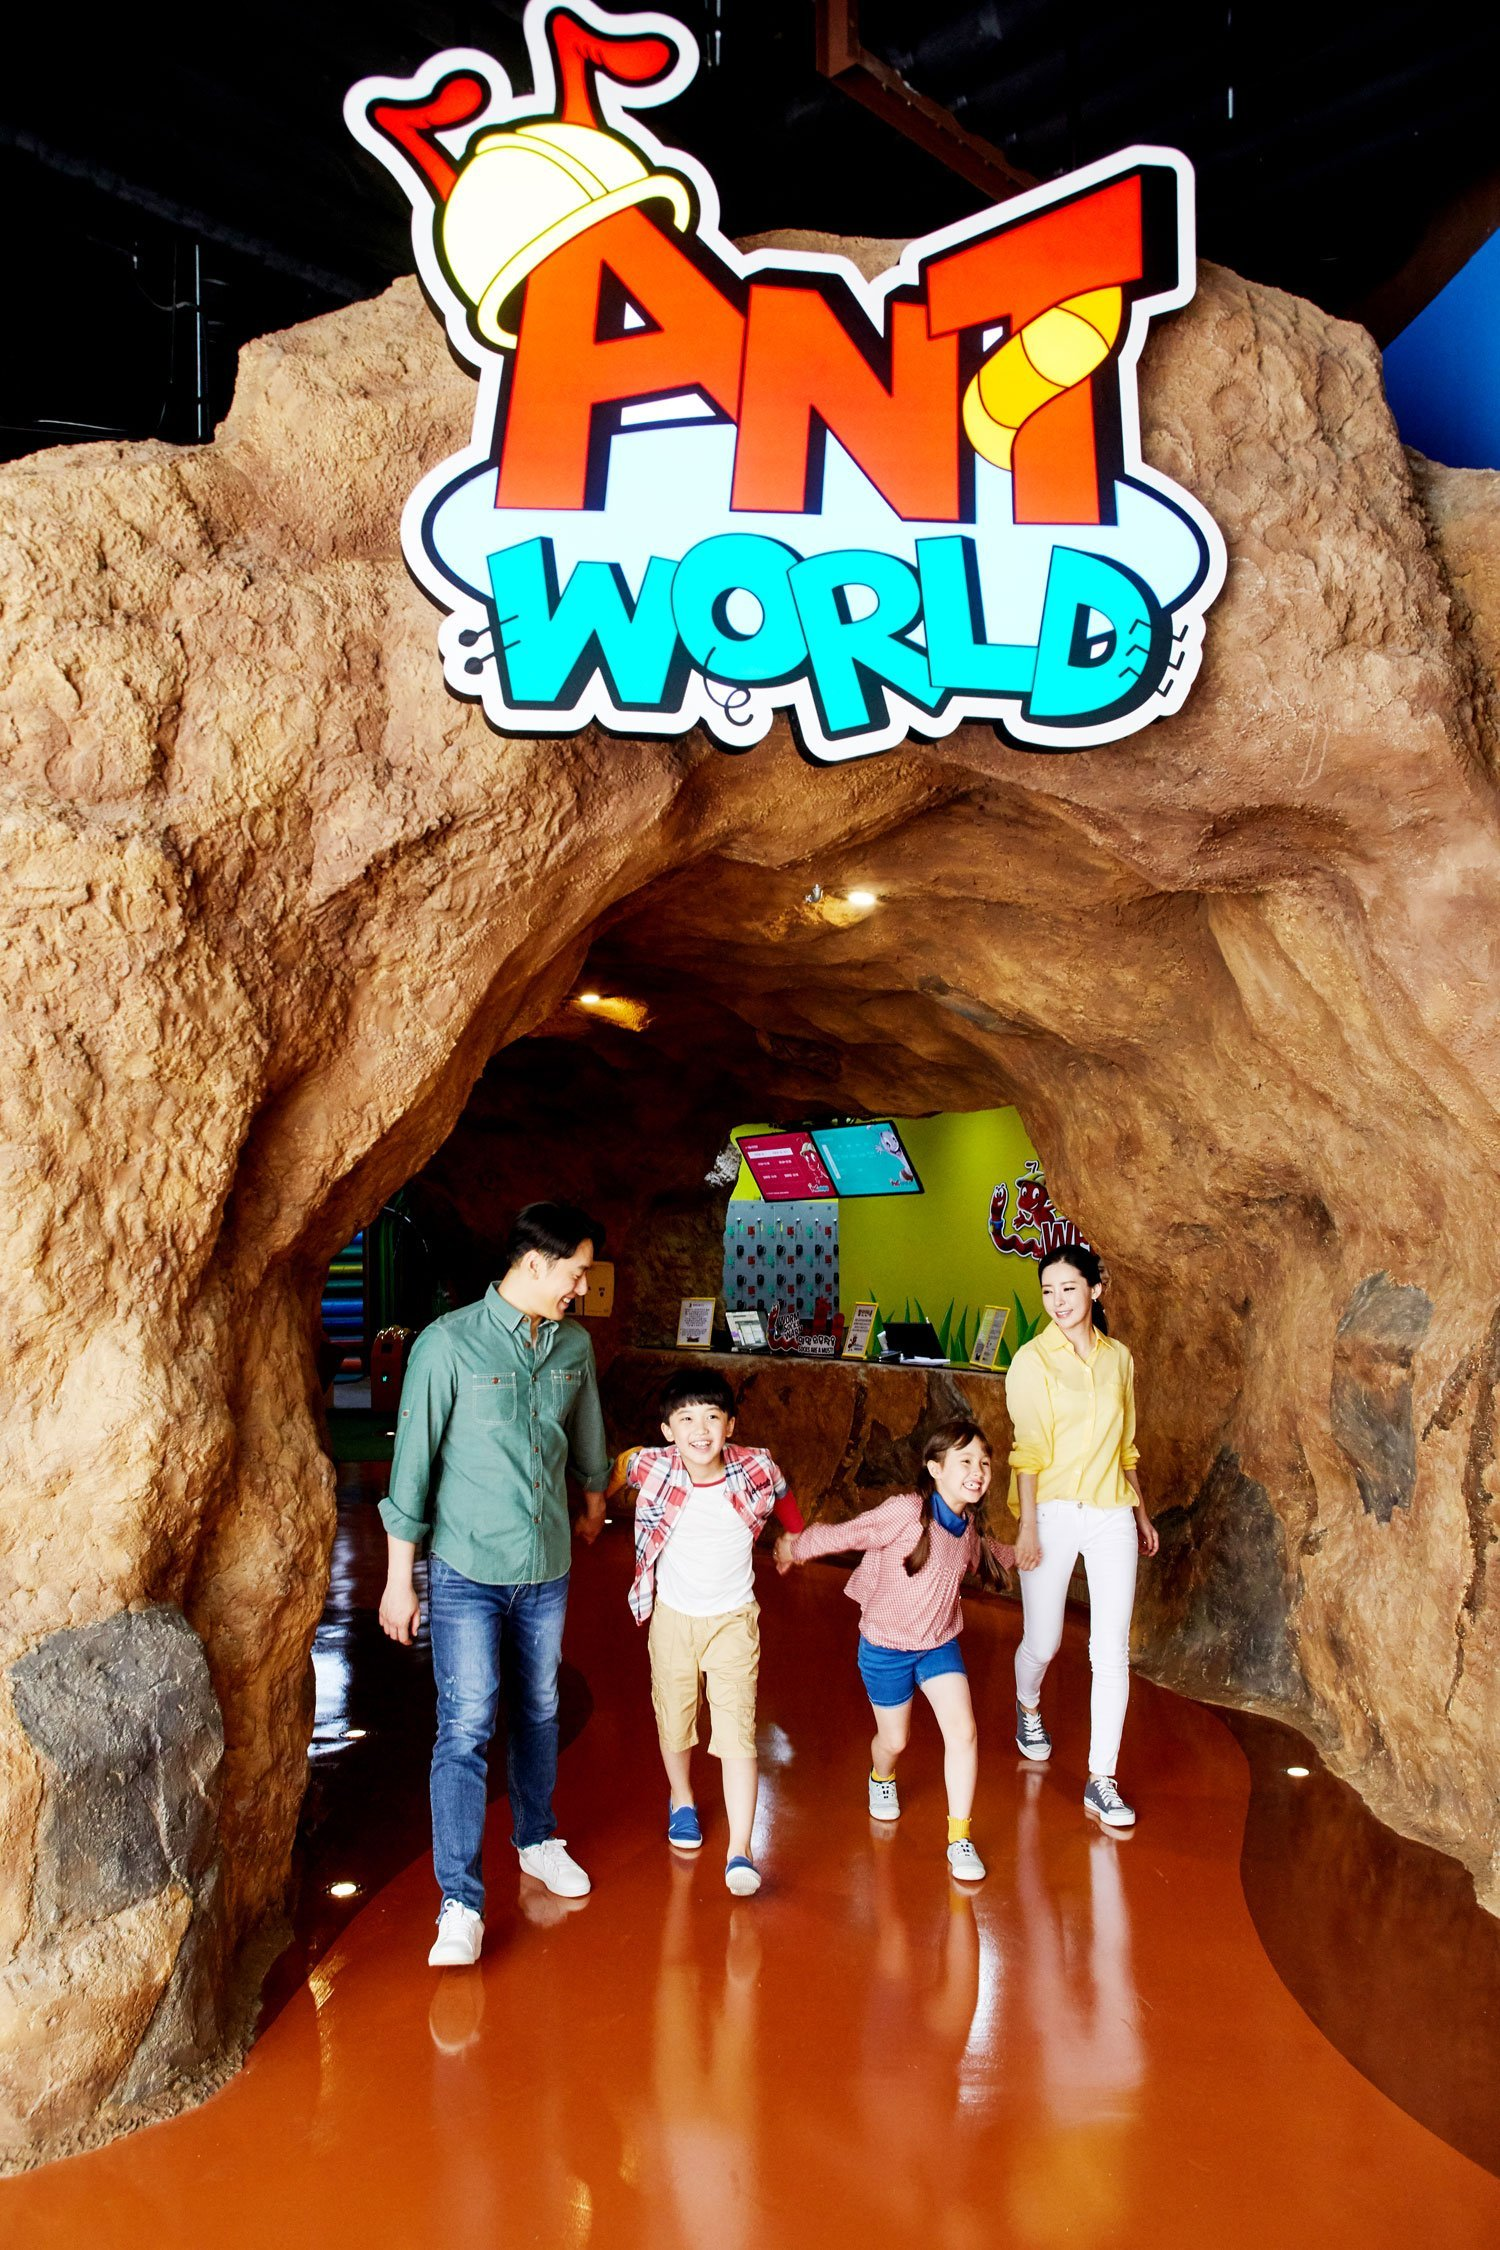 Ant World from iPlayCO Canada Debuts in Seoul, Korea